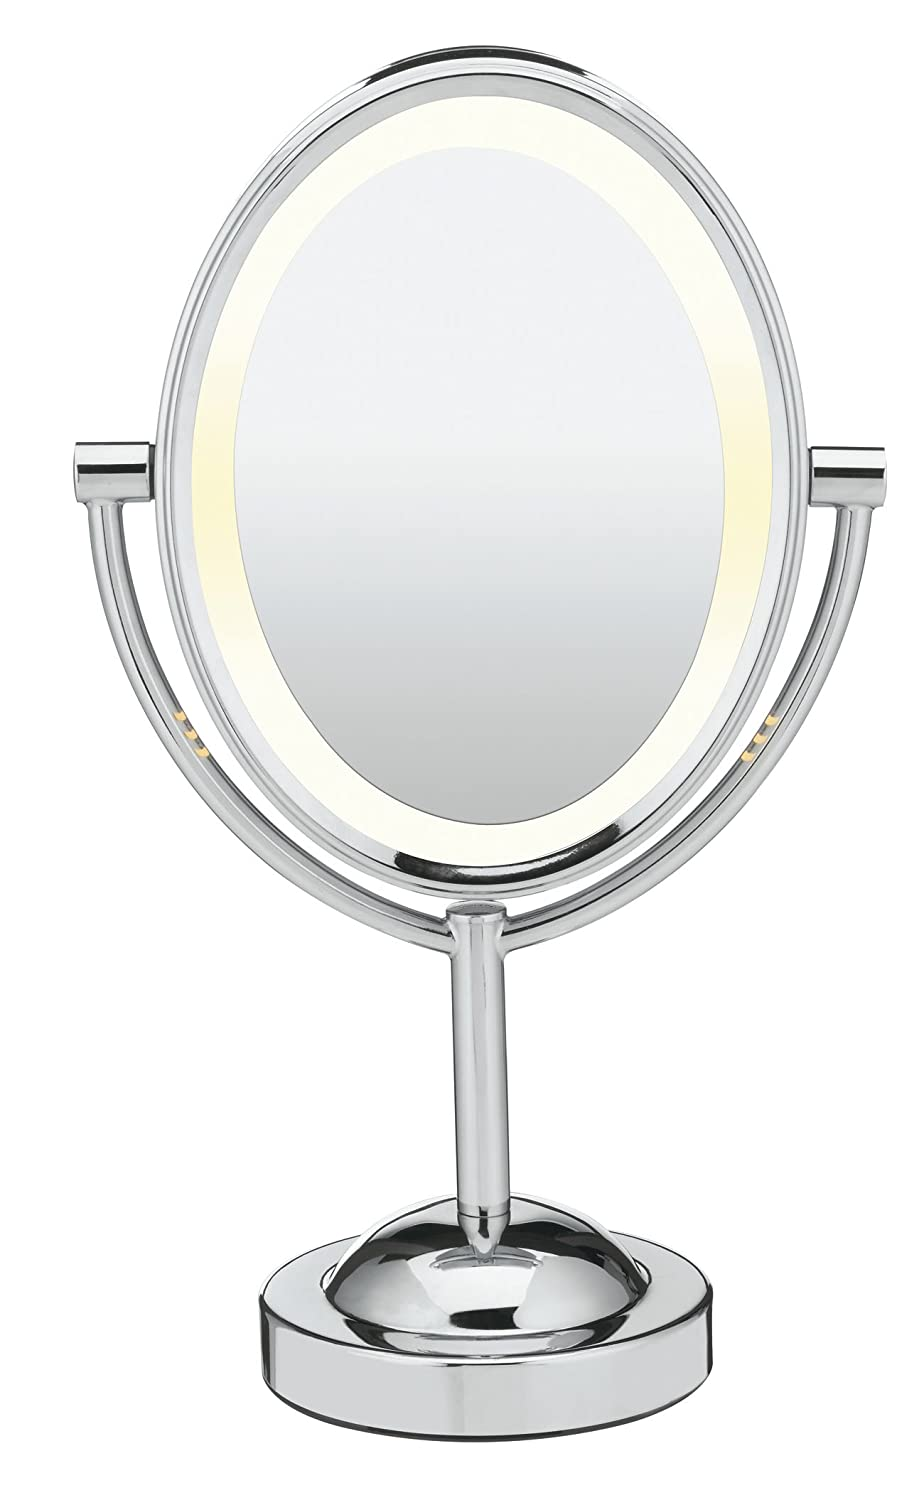 How To Find The Best Lighted Makeup Mirror For Your Routine